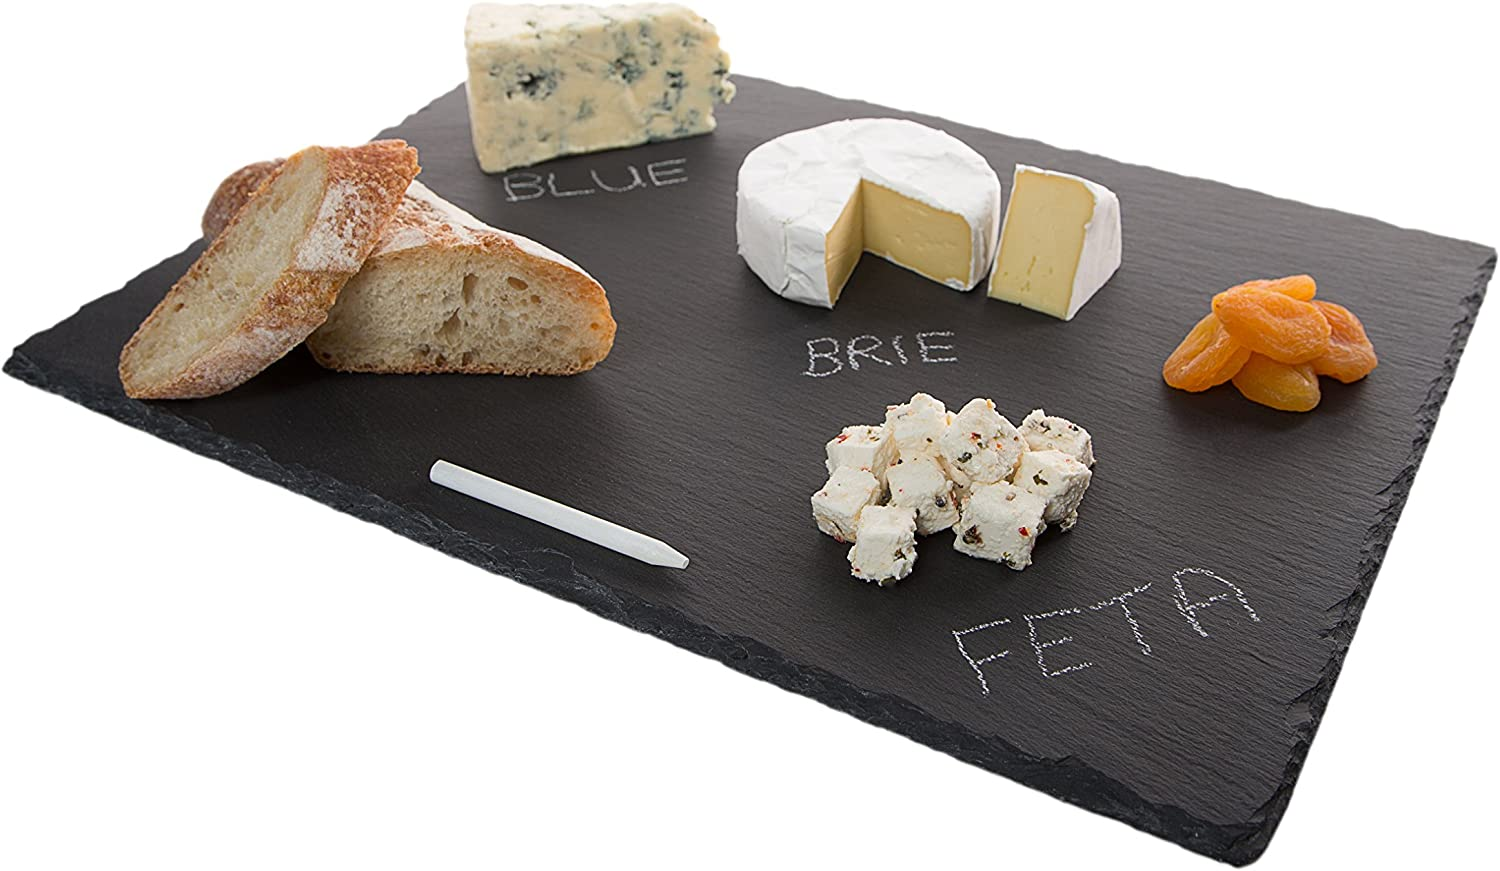 1200mmX300mm Large Food Serving Tray or Decorative Platter Grazing Board